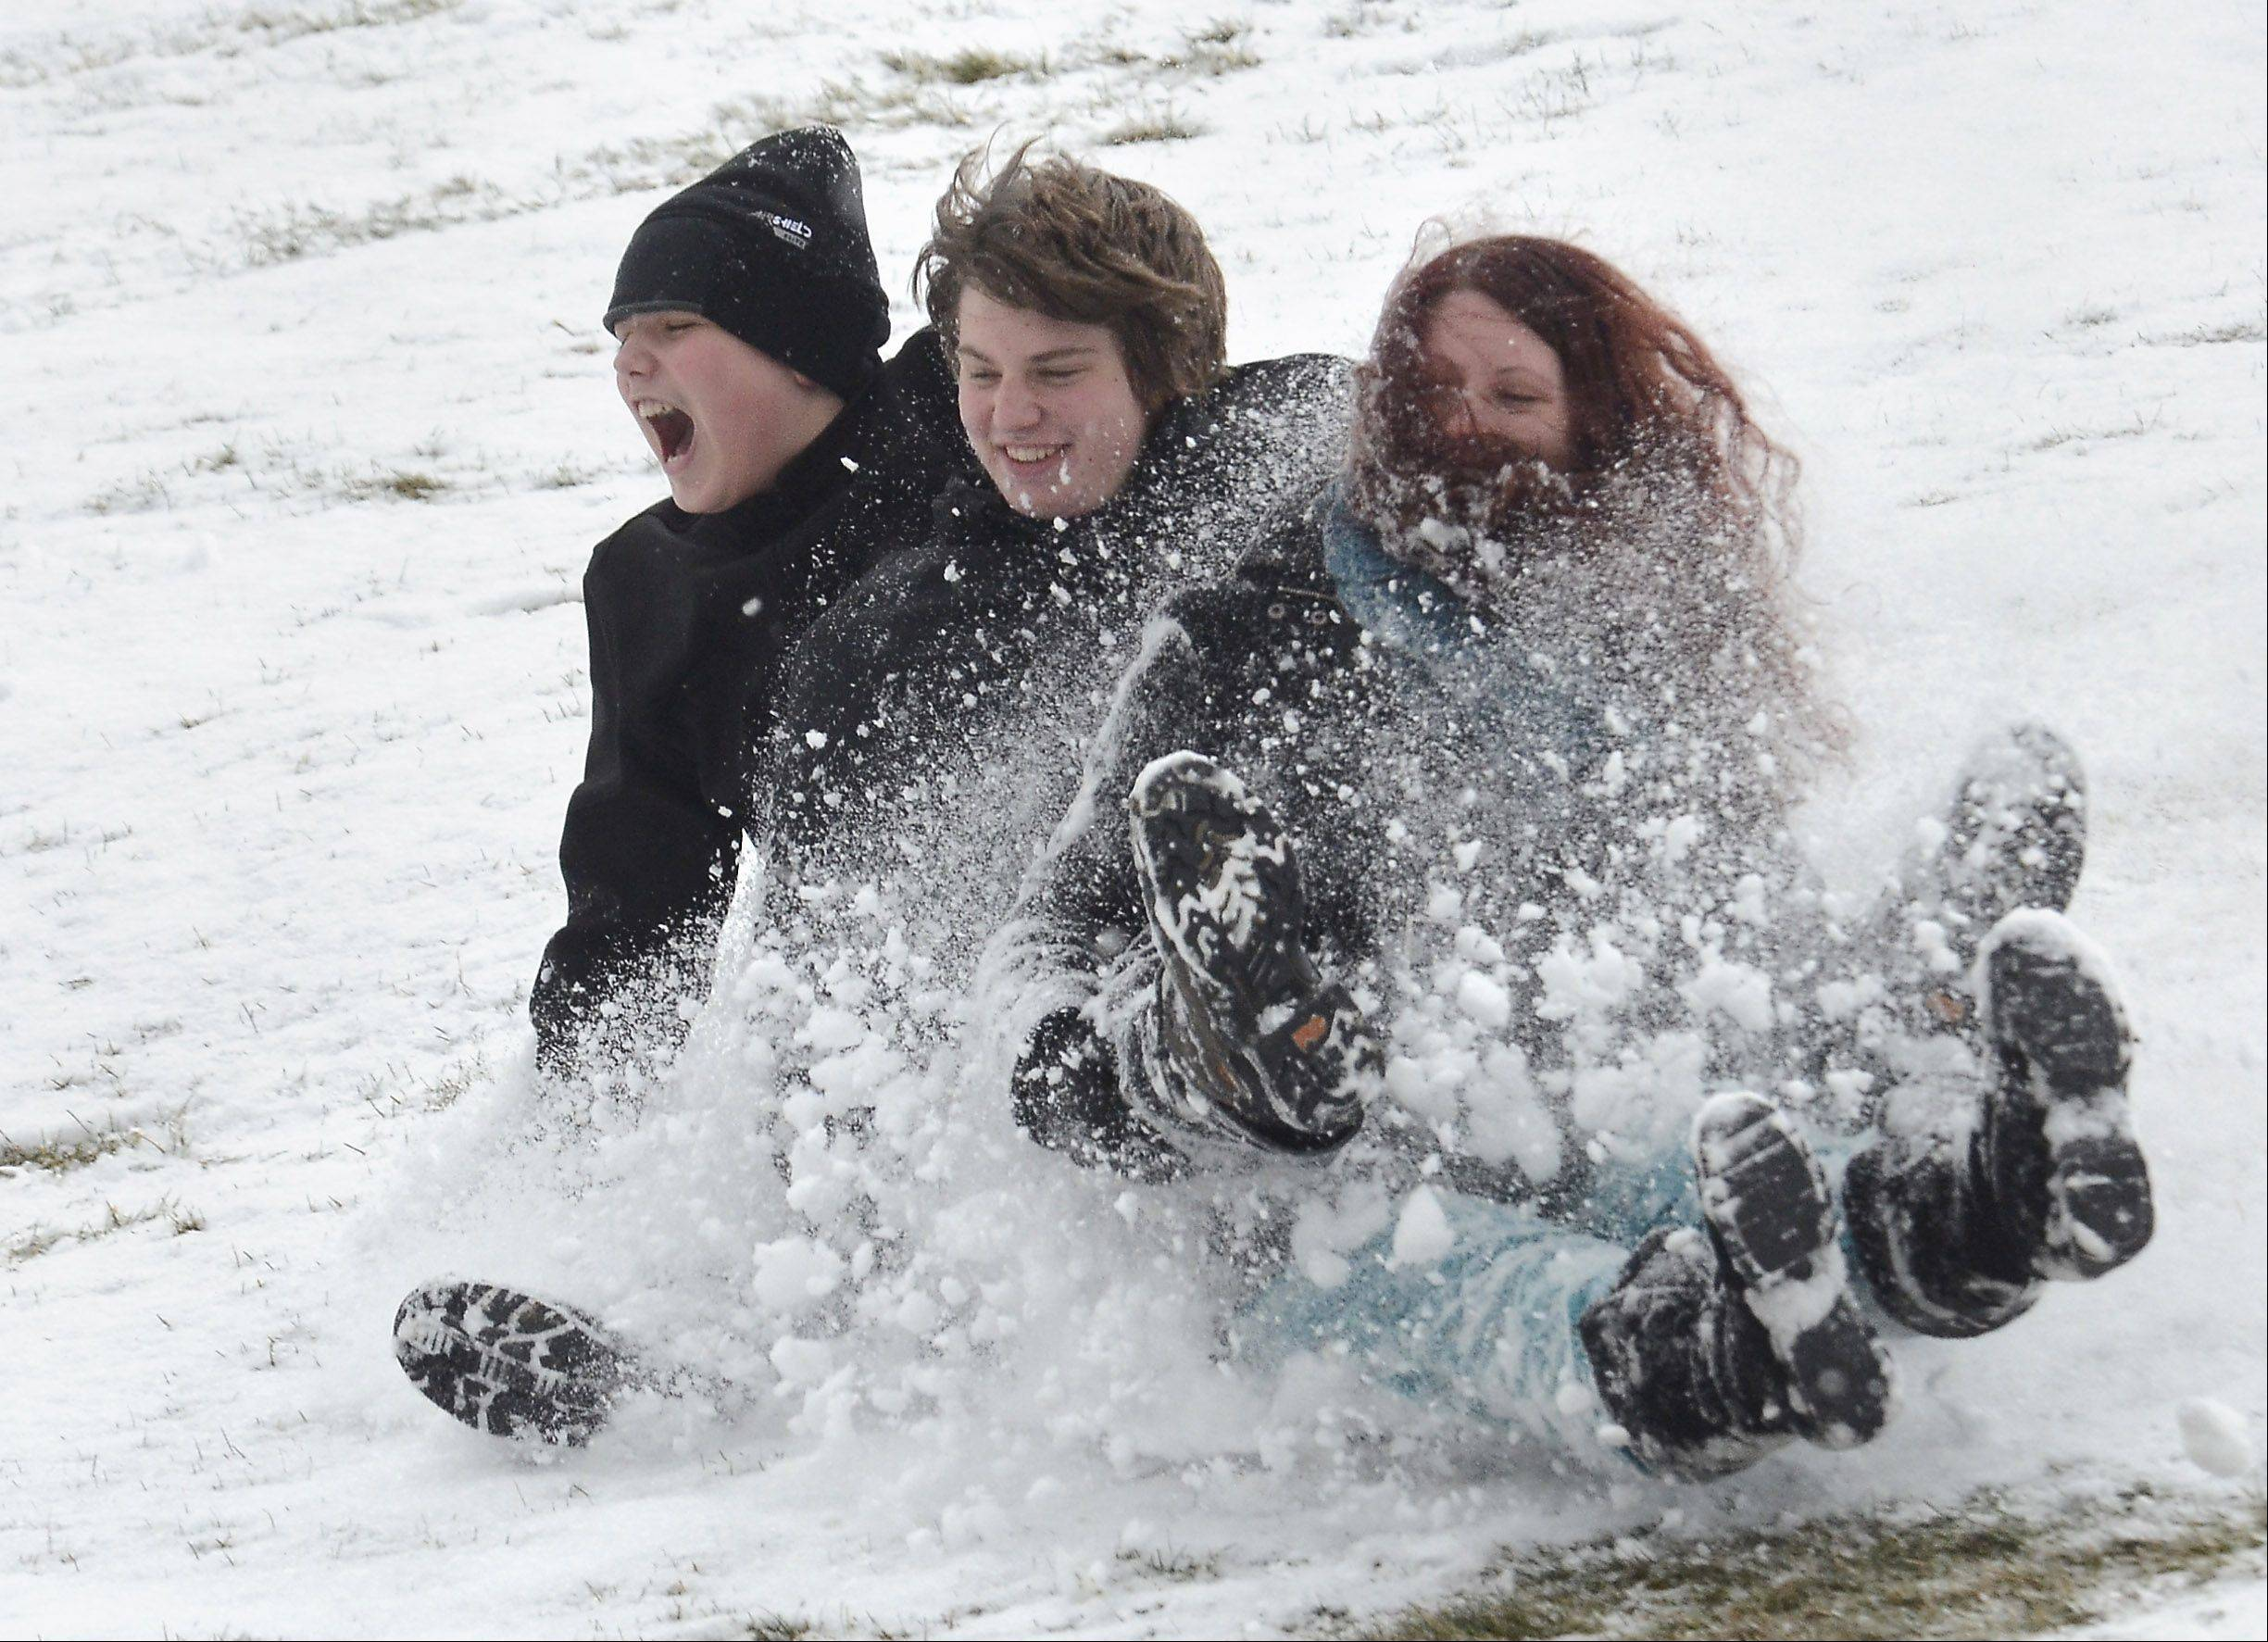 Noah Walter, 13, Kyle Walter, 15, and Jordan Walter, 21, all of Arlington Heights, get a wild ride on the sled hill at Sunset Meadows Park Friday in Arlington Heights.